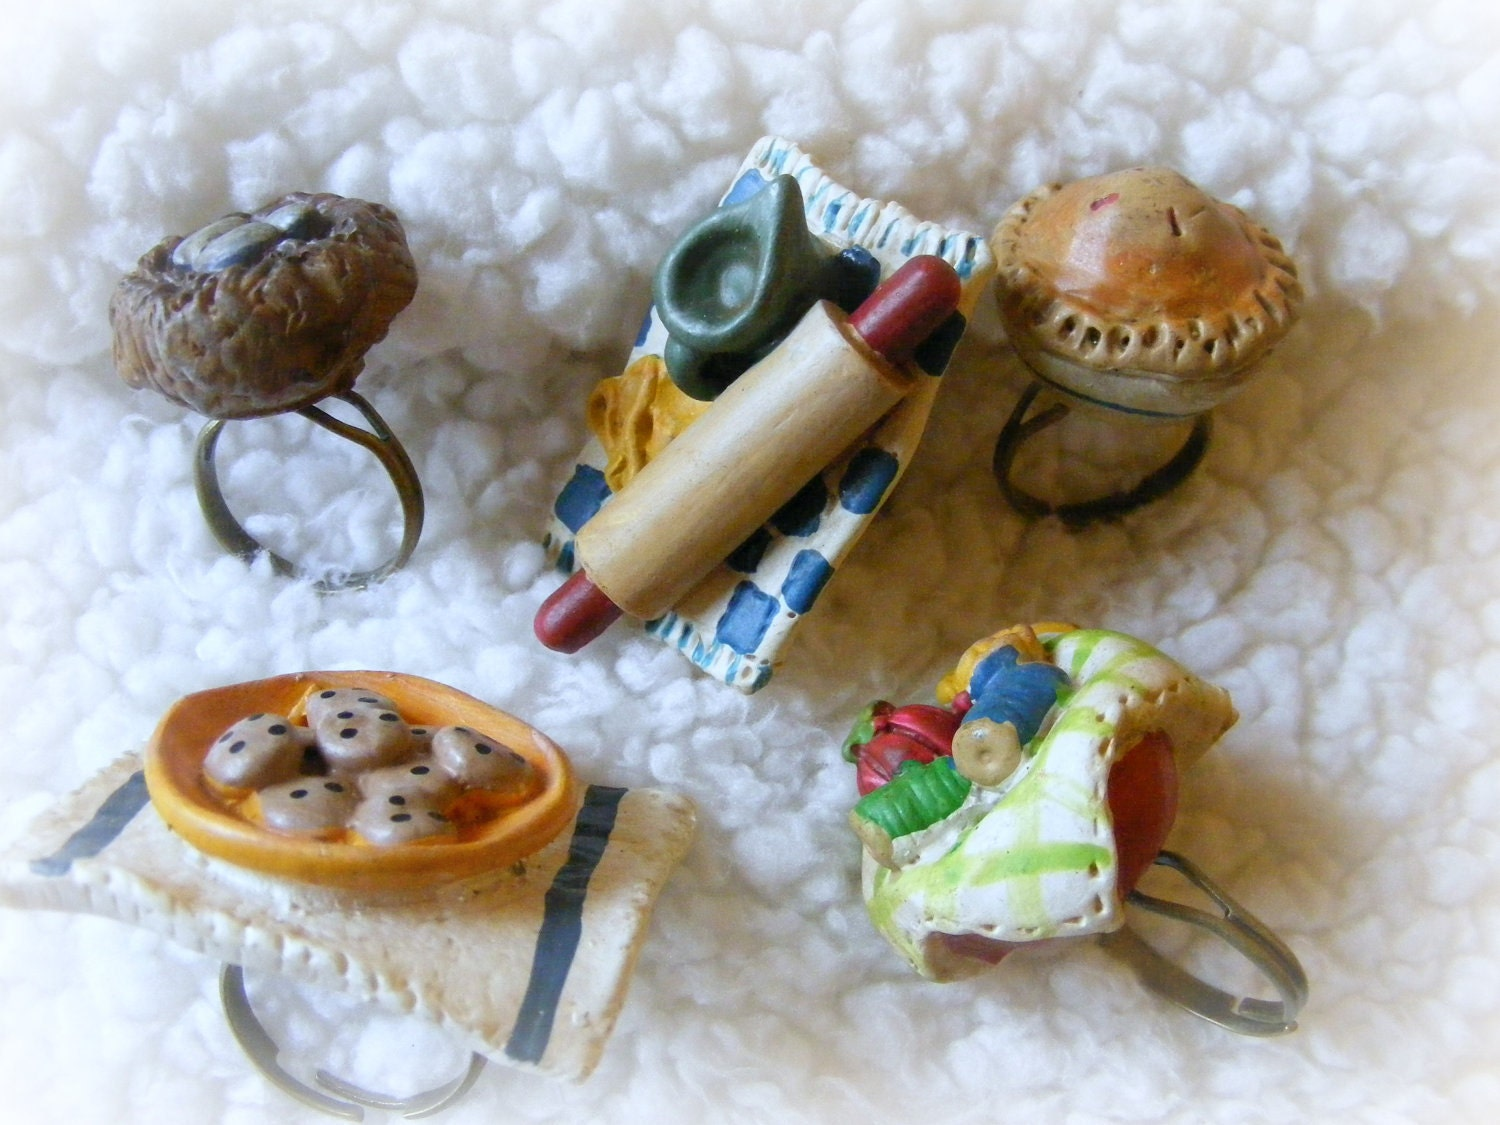 Rings Your Choice of Style Pie, Nest, Cookies, Sewing Bowl, Bakers Tools